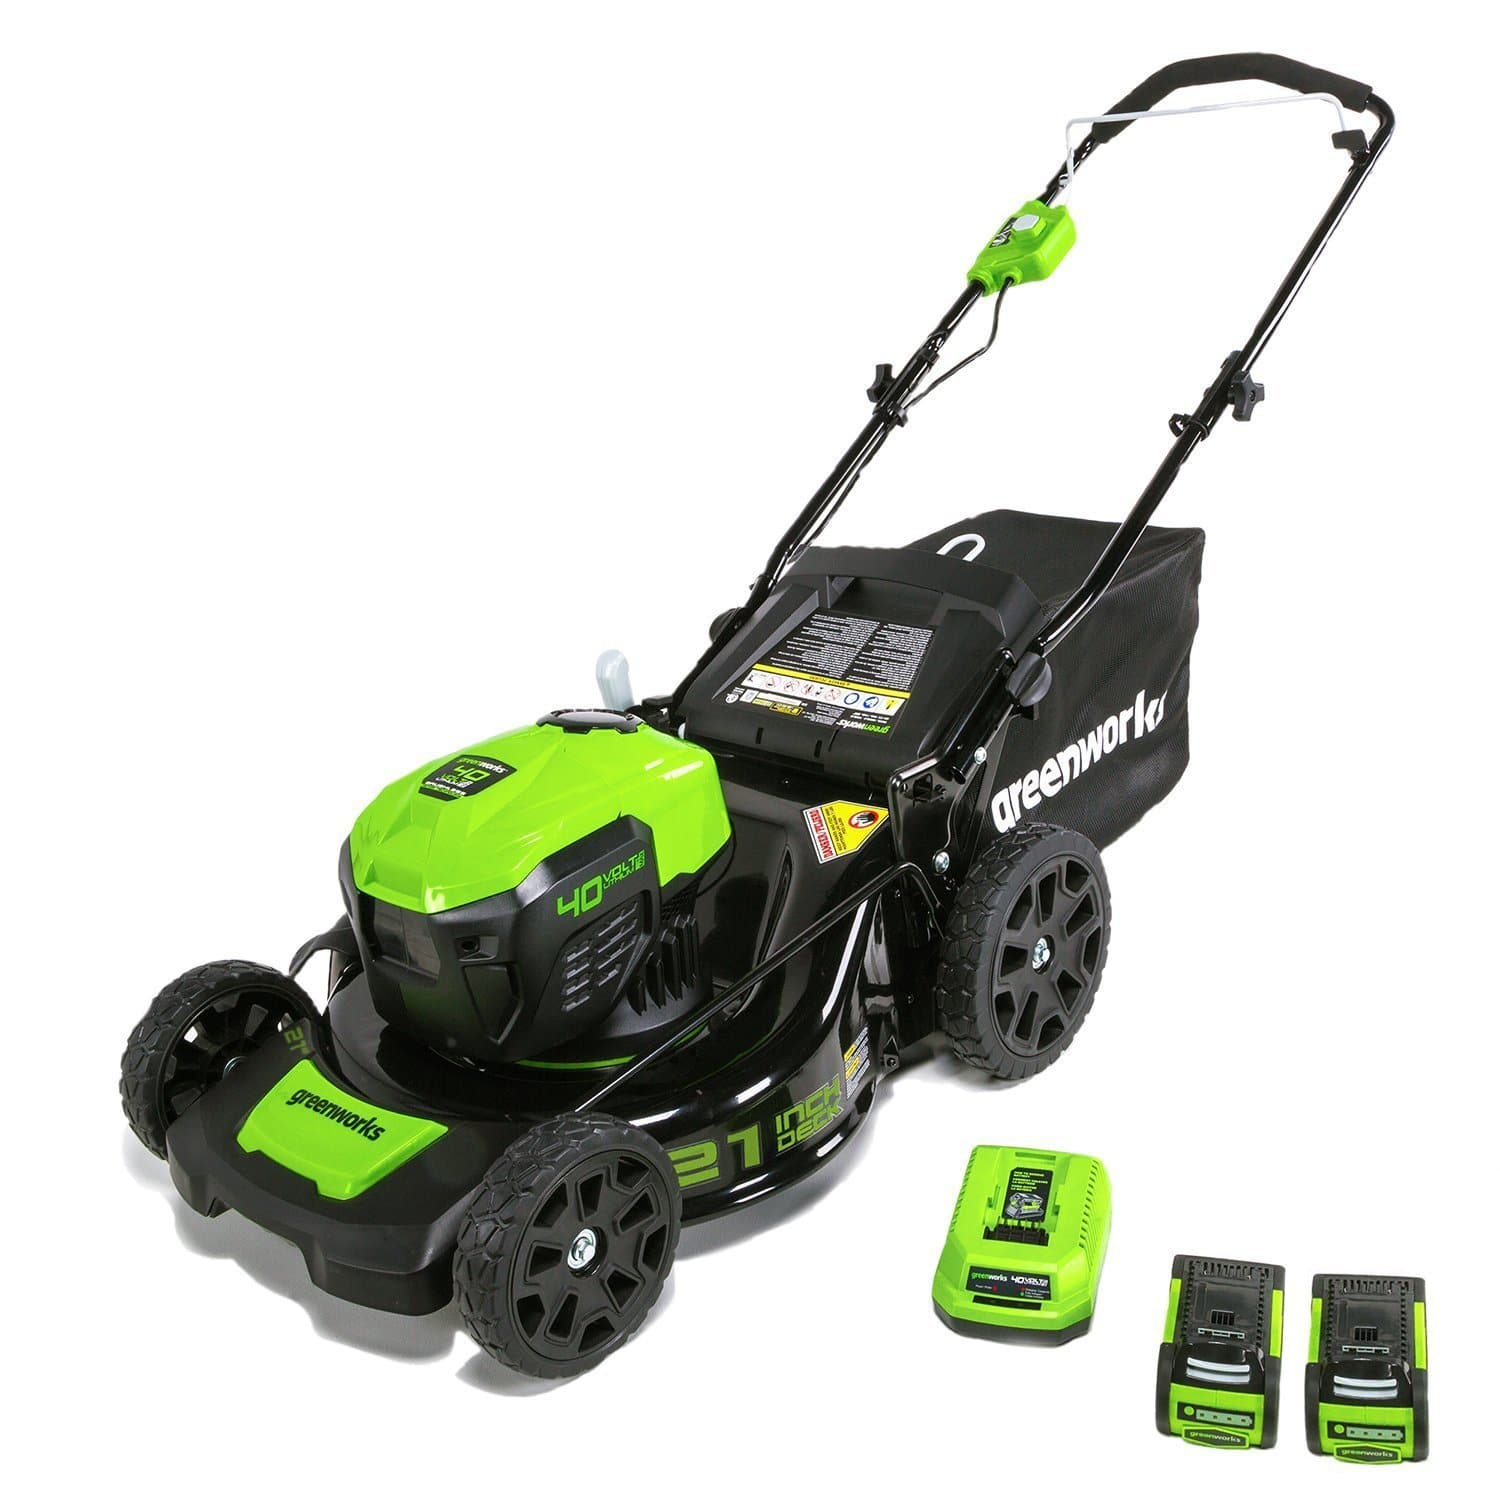 "GreenWorks 21-Inch 40V Cordless Brushless Lawn Mower, Two 2.5 AH Batteries Included MO40L2512 [21"" Batteries Included] $289"